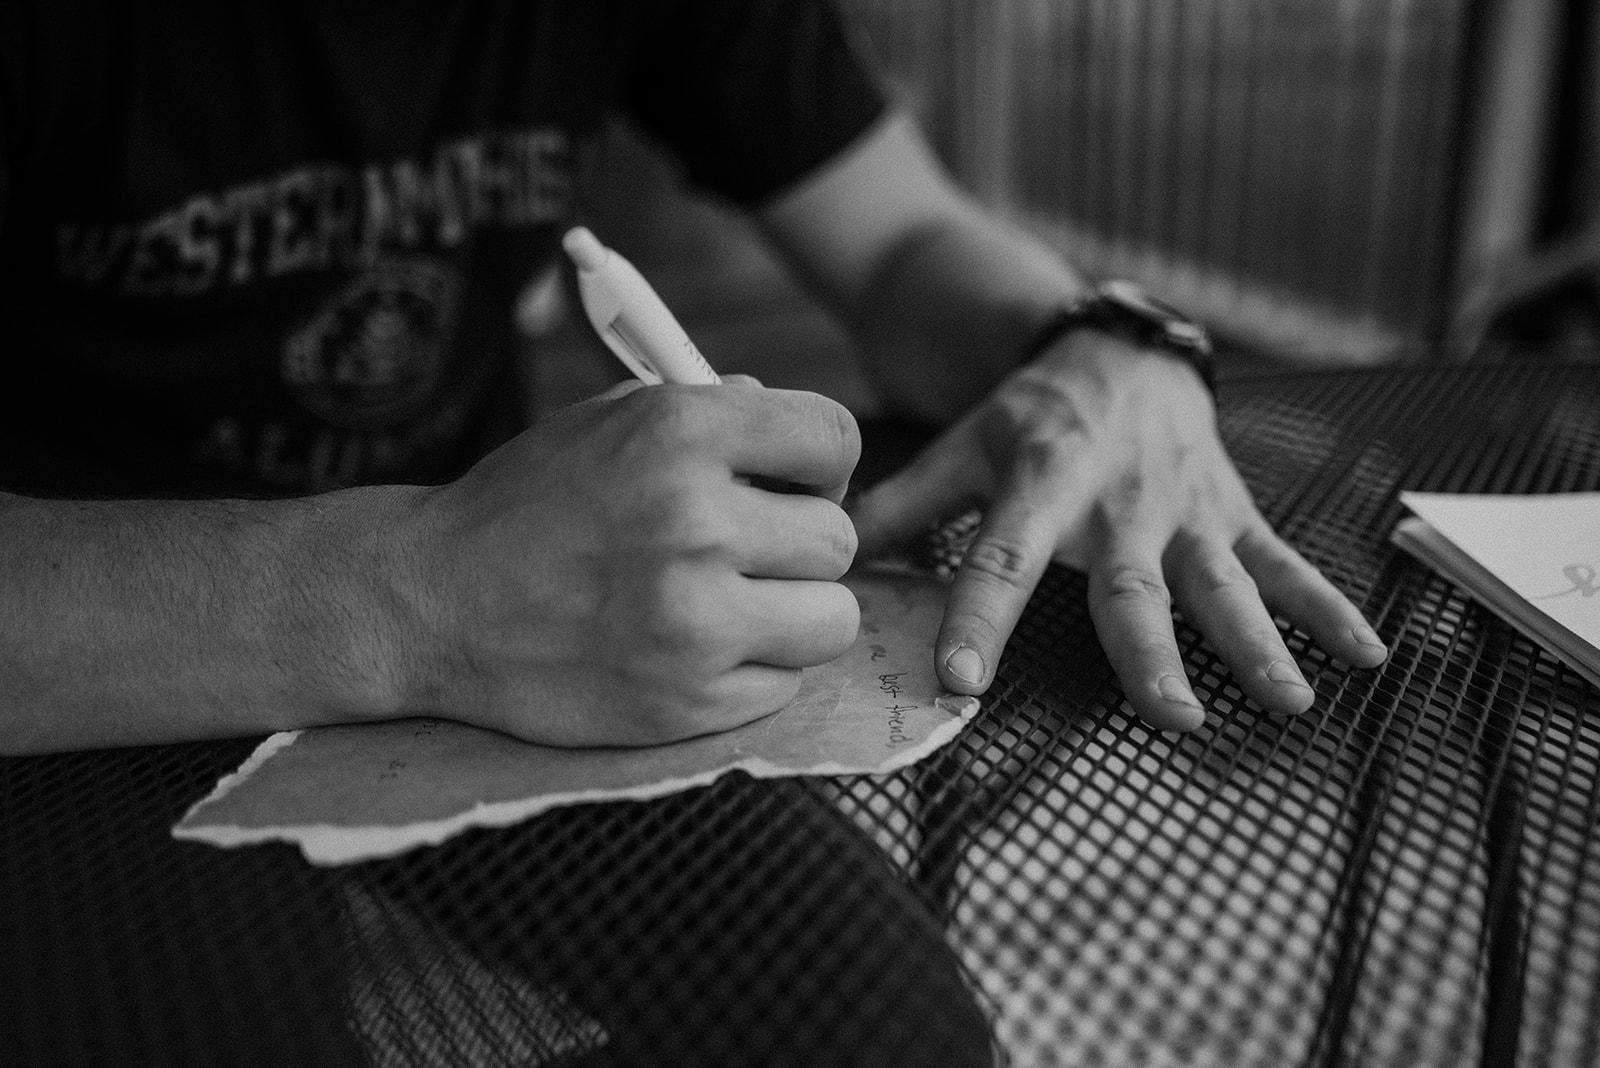 overthevineswisconsinwedding_0271.jpg